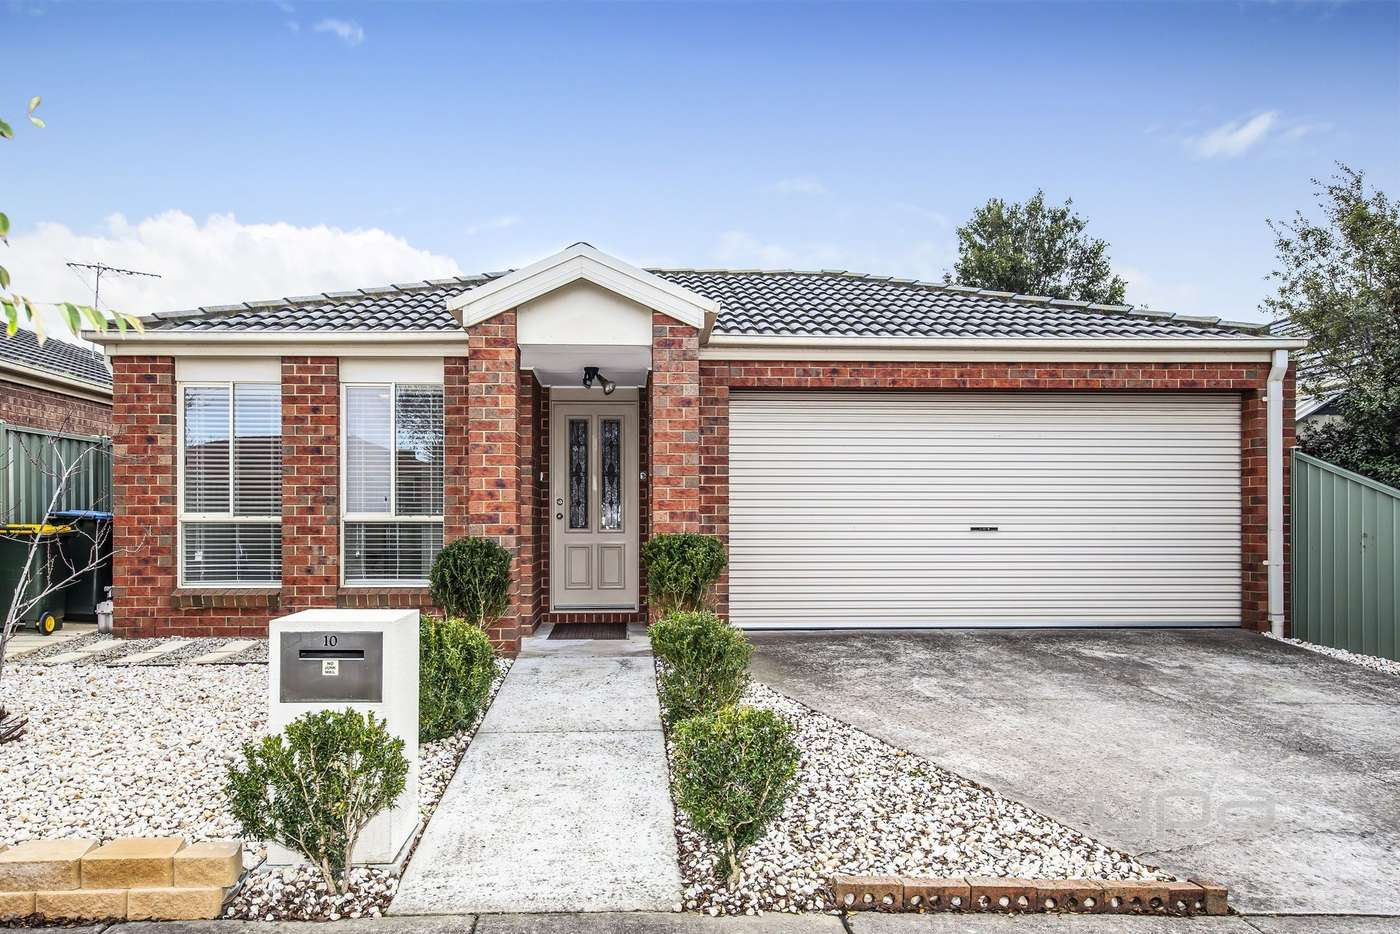 Main view of Homely house listing, 10 Brassey Street, Wyndham Vale VIC 3024